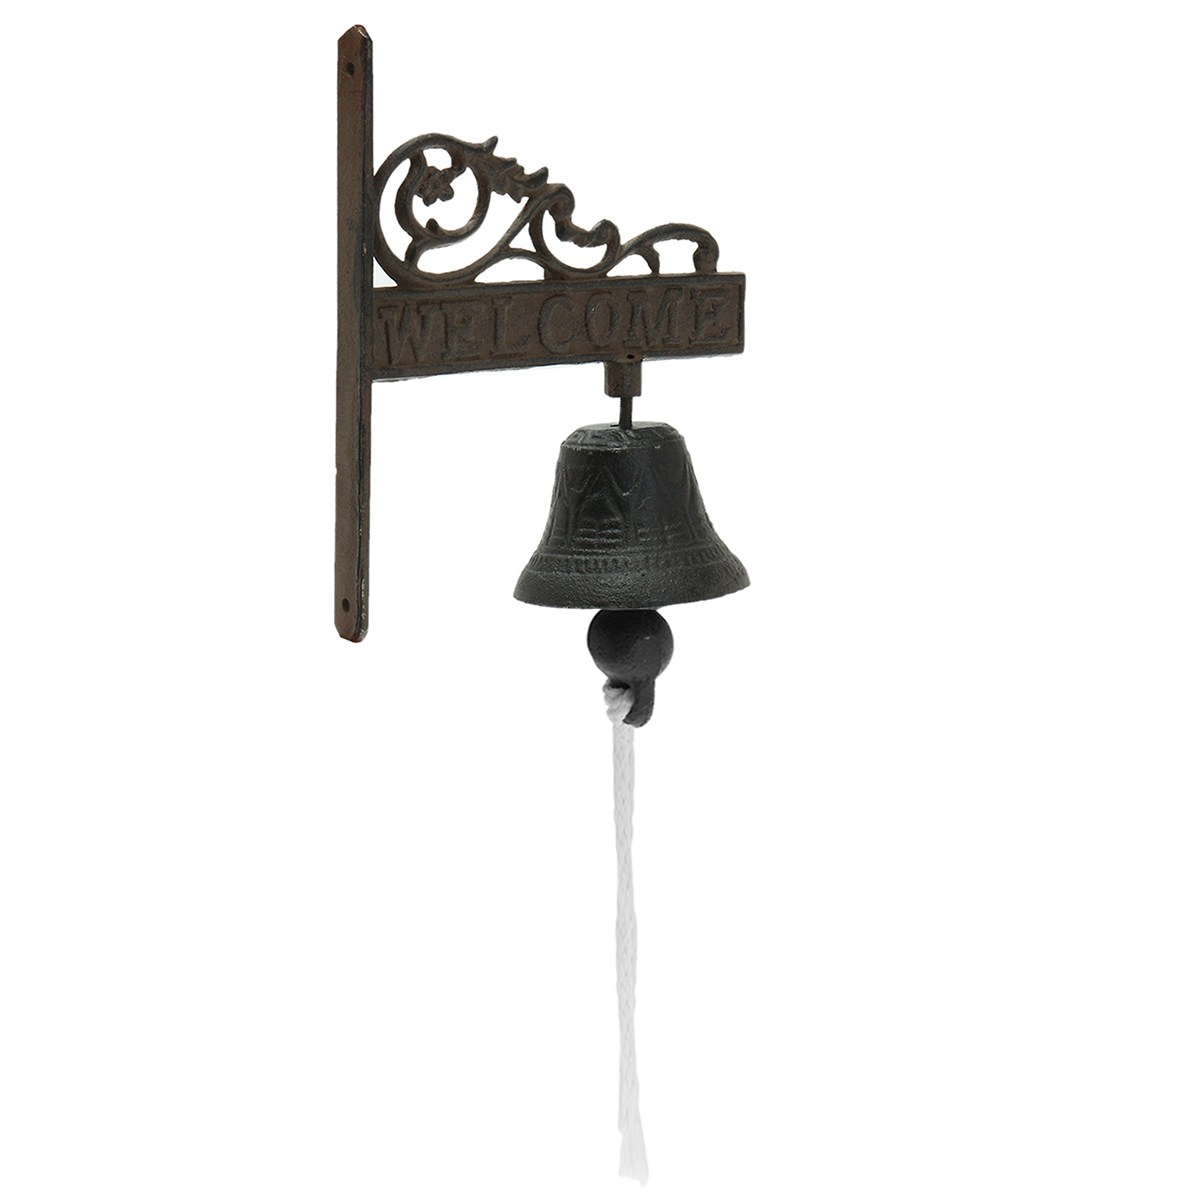 NEW Safurance Vintage Style Brown Metal Cast Iron Door Bell Wall Mounted Garden Decoration Door Intercom new vintage style rusted dog cast iron door bell wall mounted garden decoration access control